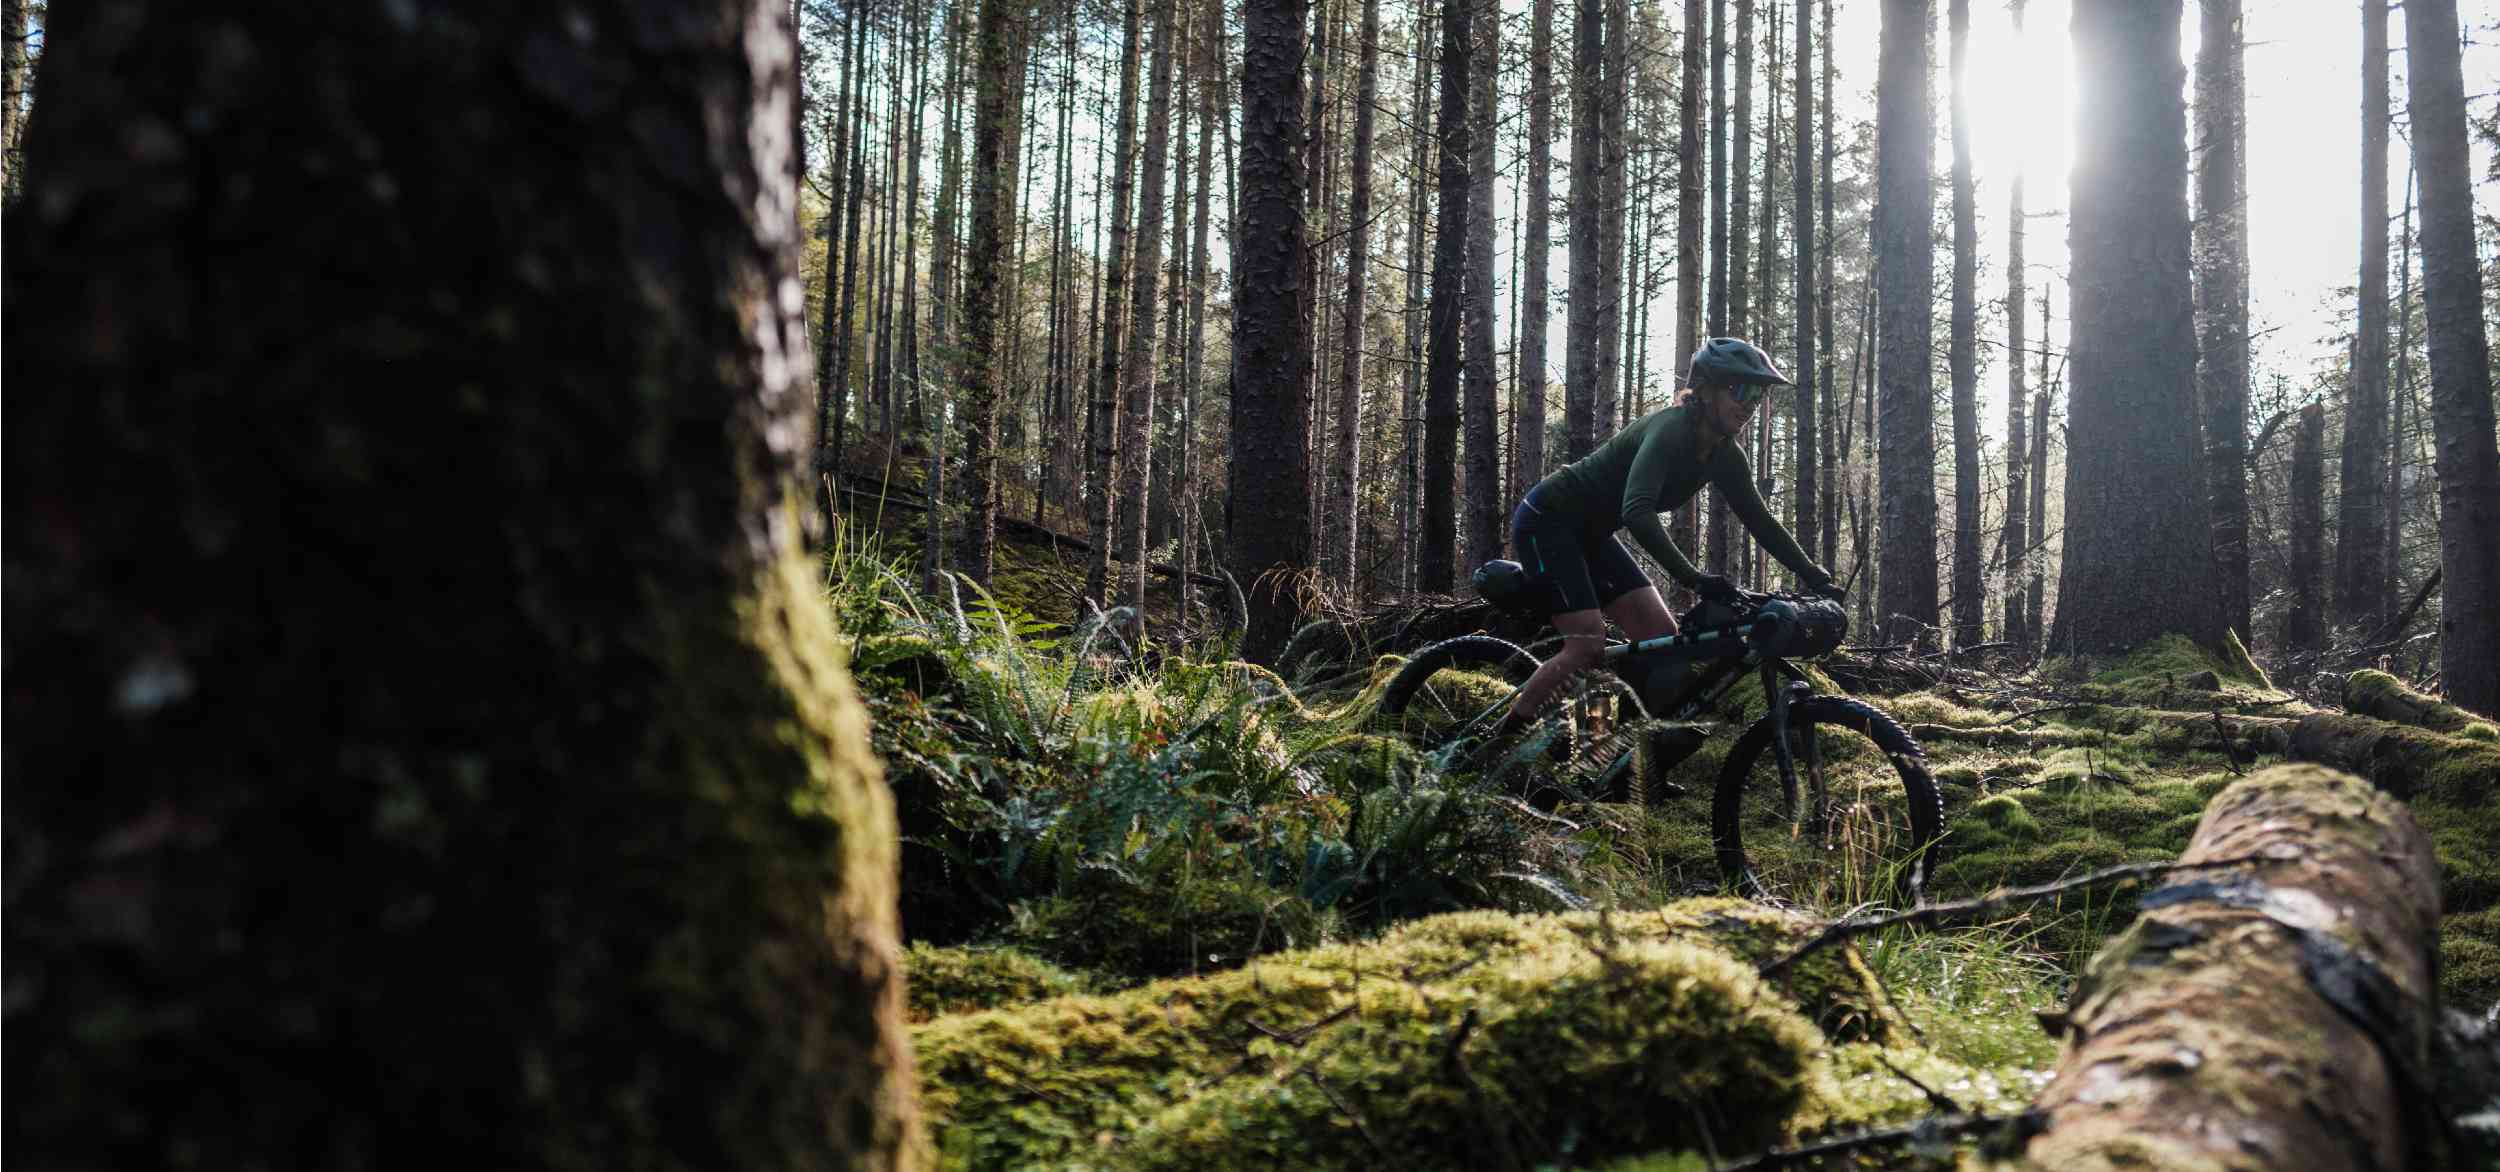 Jenny Tough riding a backcountry trail on her mountain bike with Backcountry Series bikepacking bags